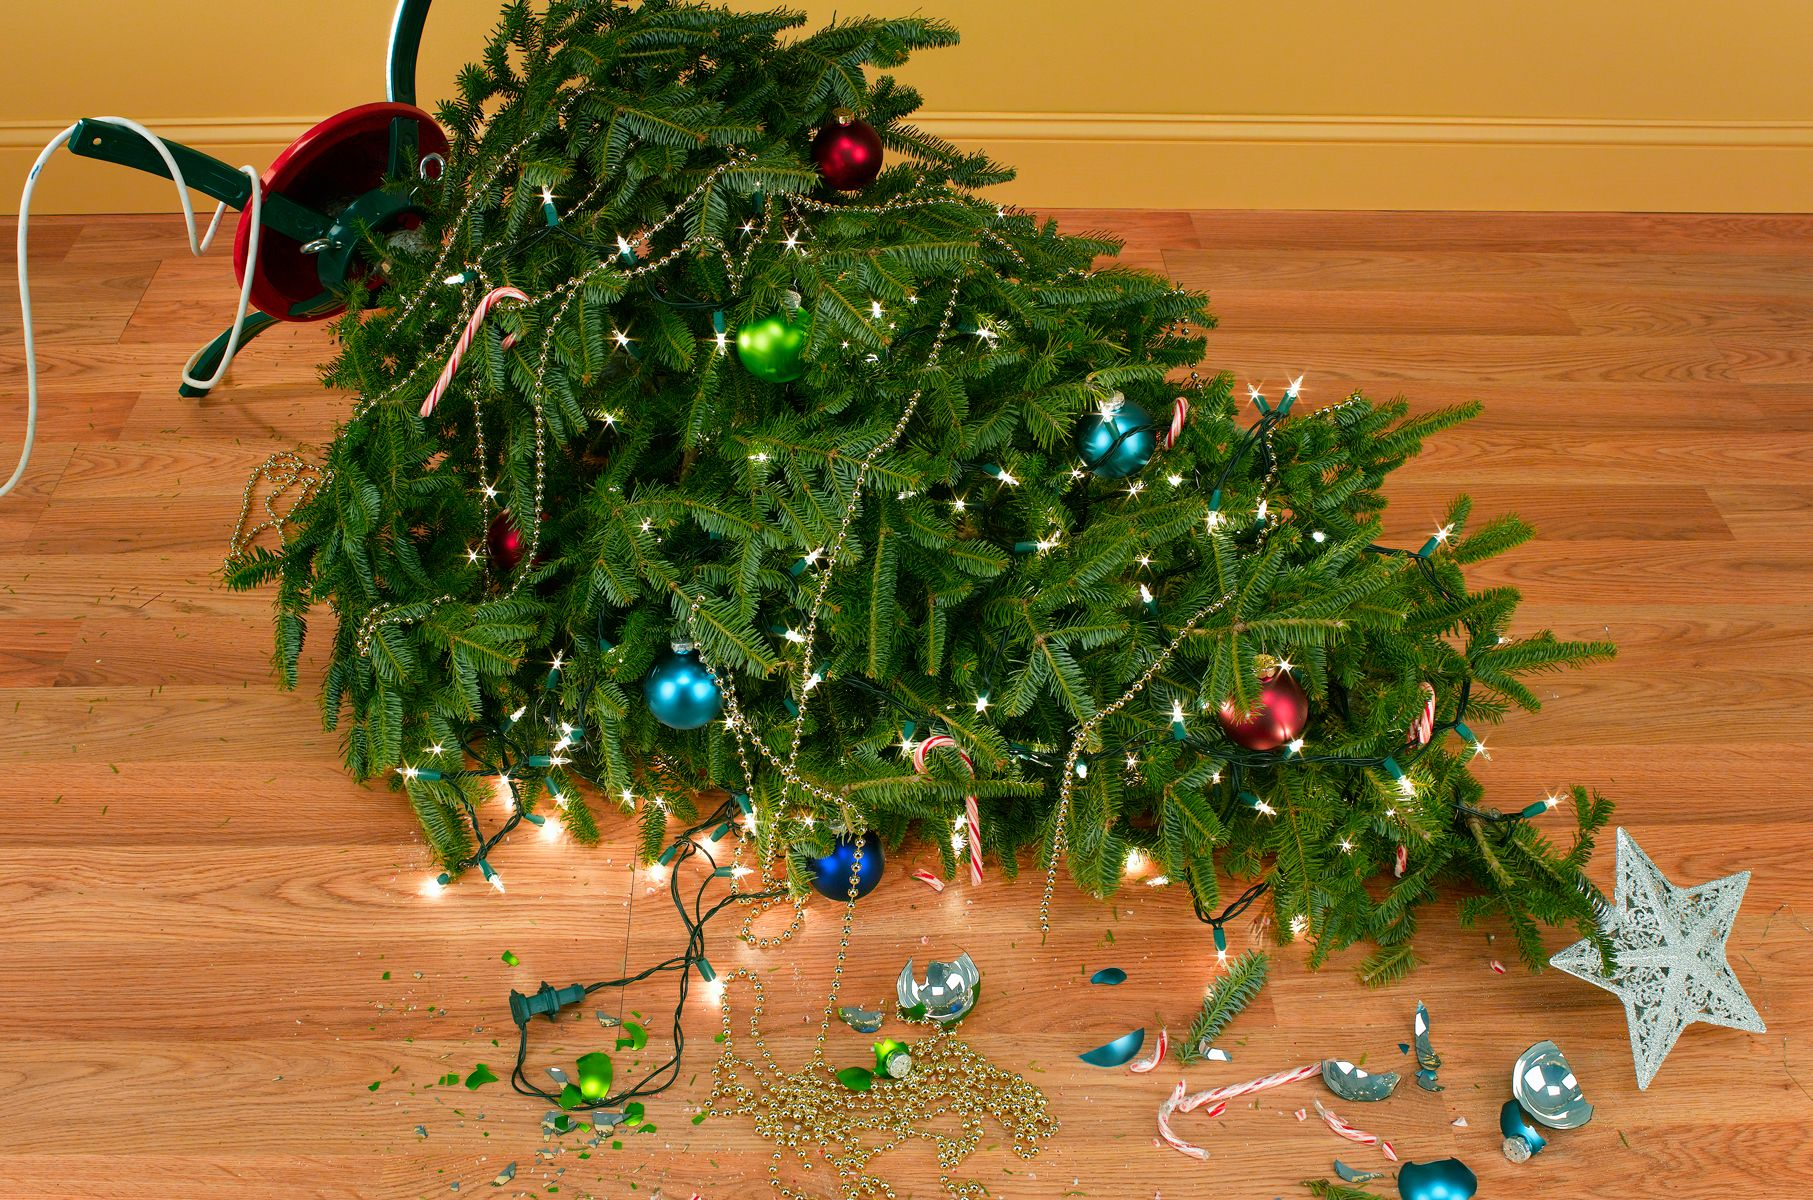 How to Reuse Christmas Decorations - Things to Never Throw Away